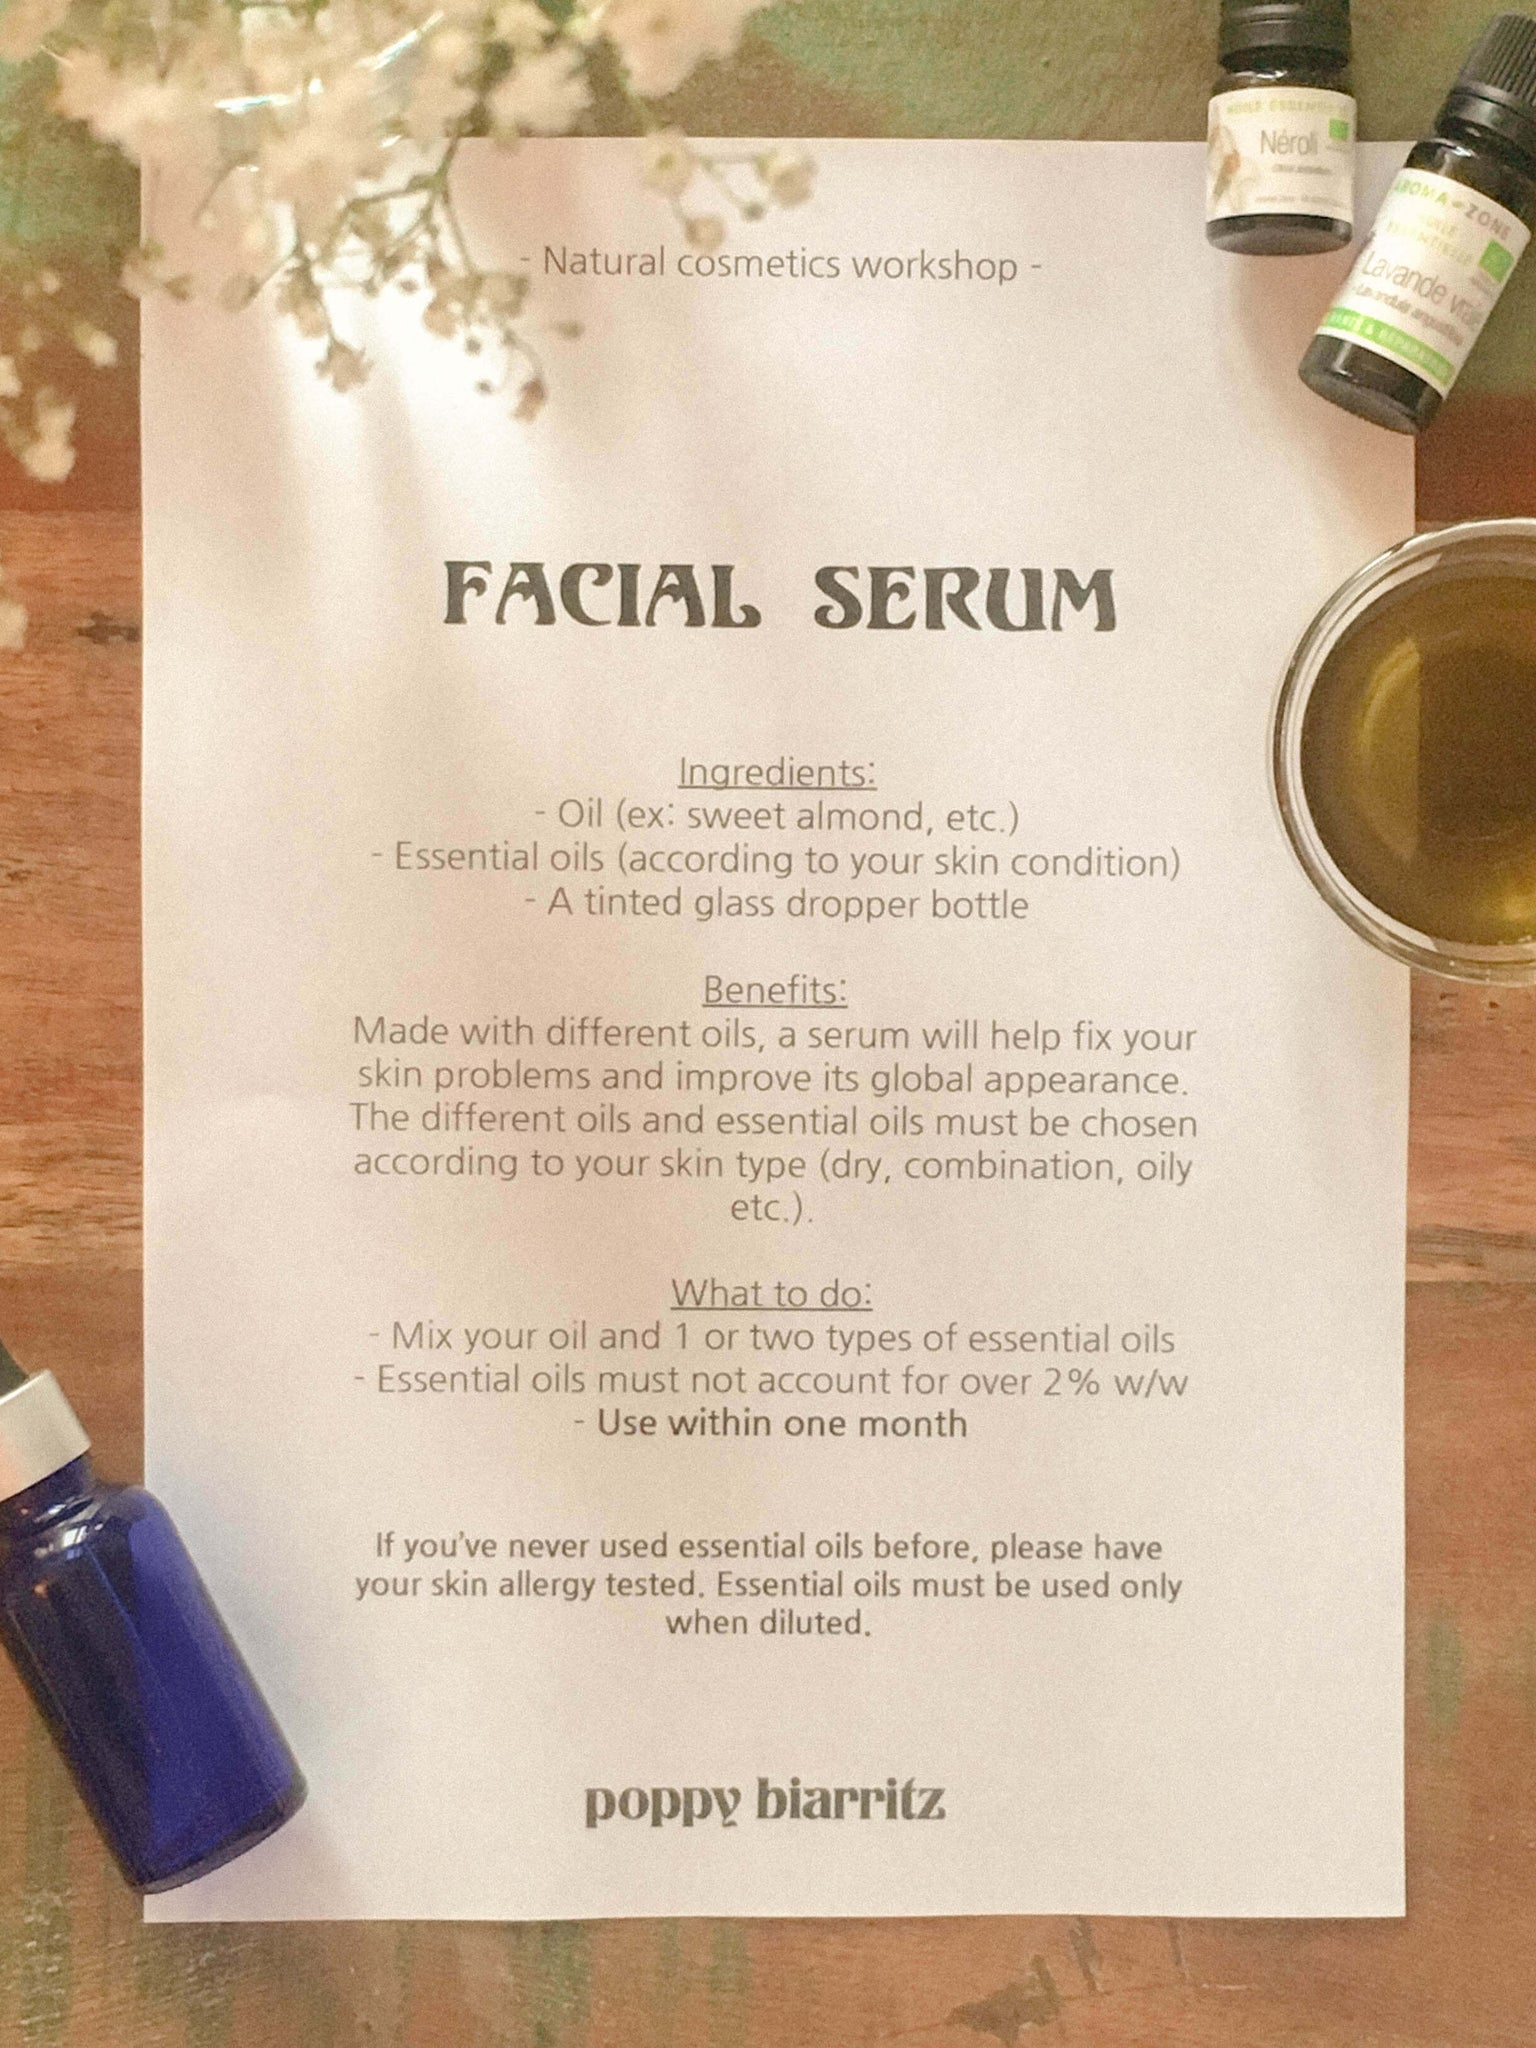 natural cosmetics facial serum recipe